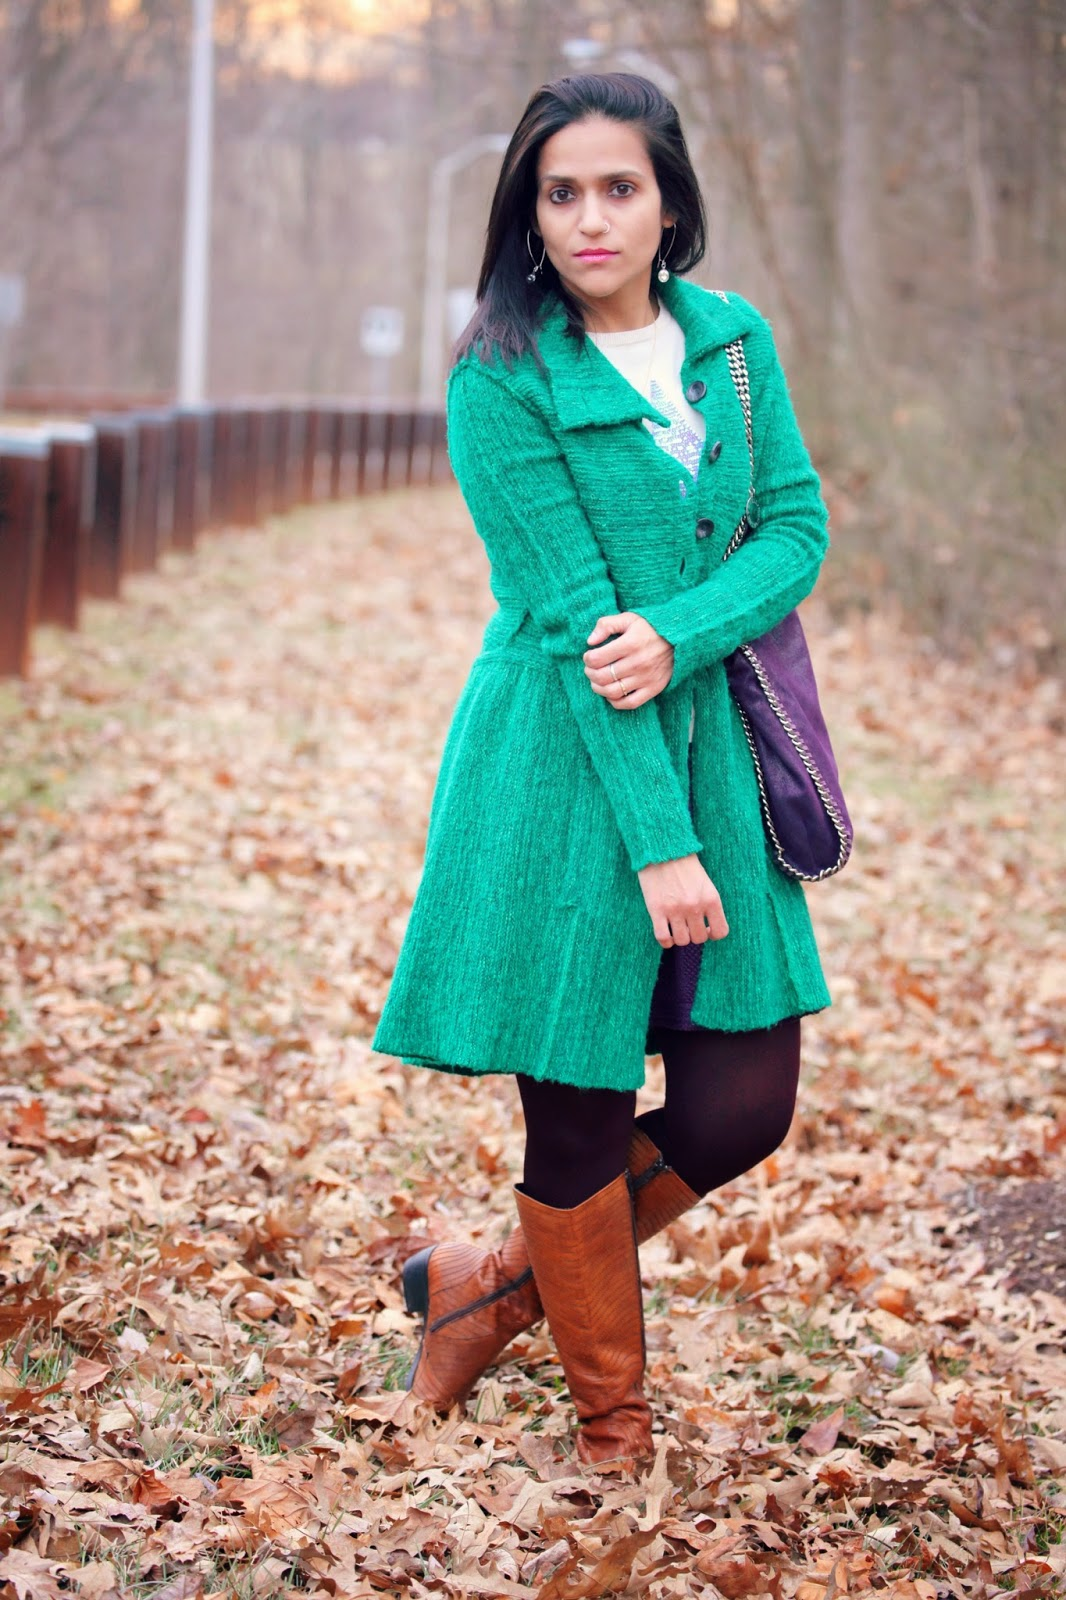 How To Wear Green? Tanvii.com